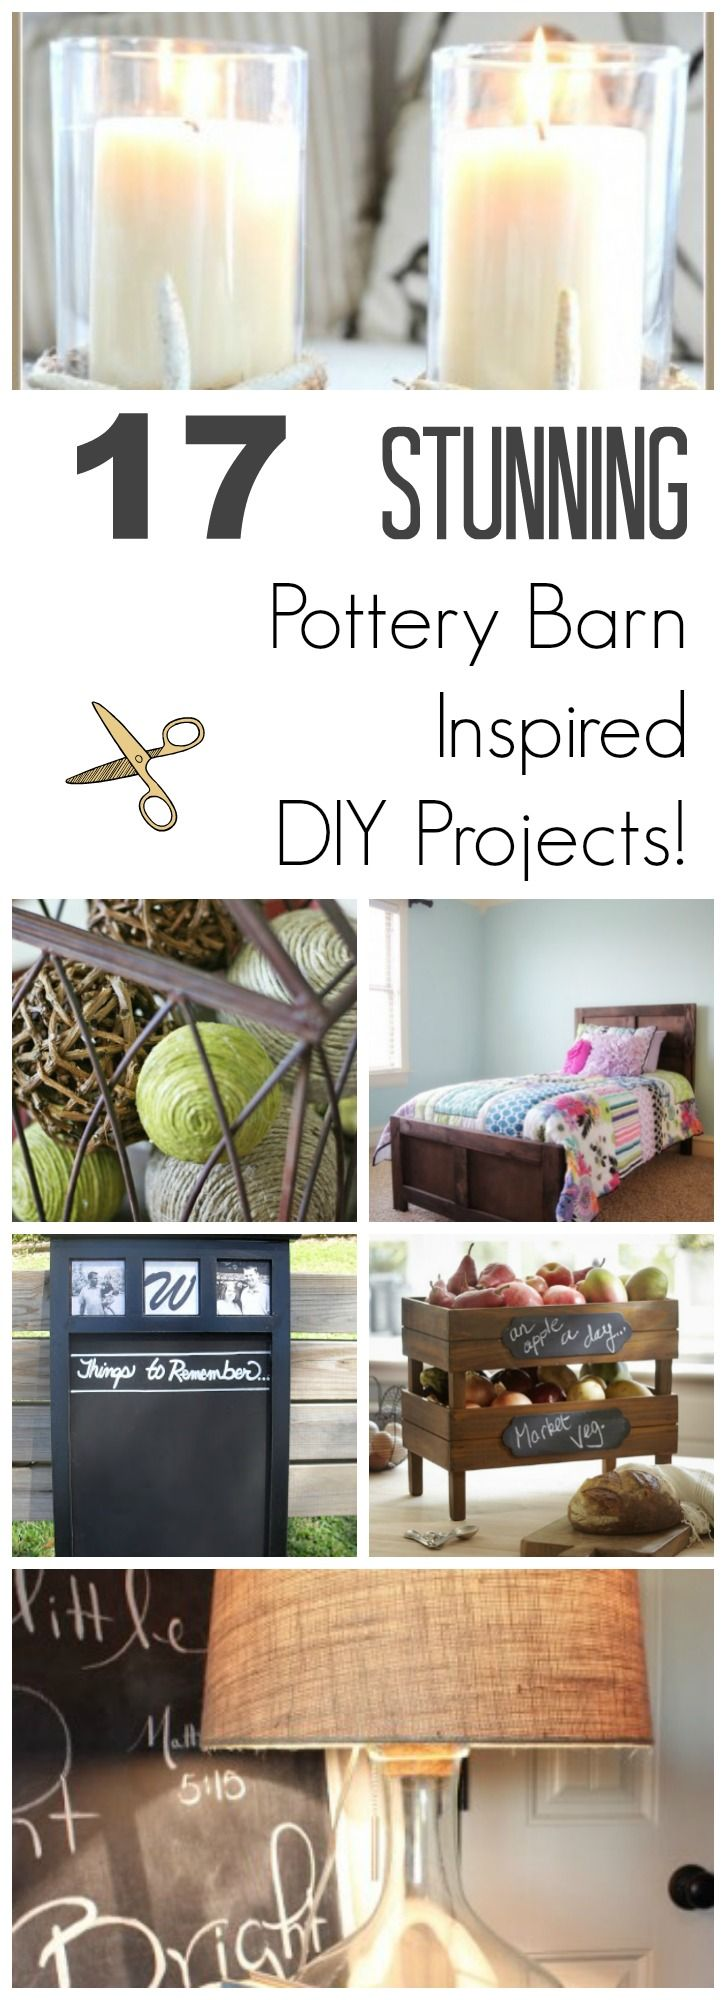 17 Stunning Pottery Barn Inspired DIY Projects